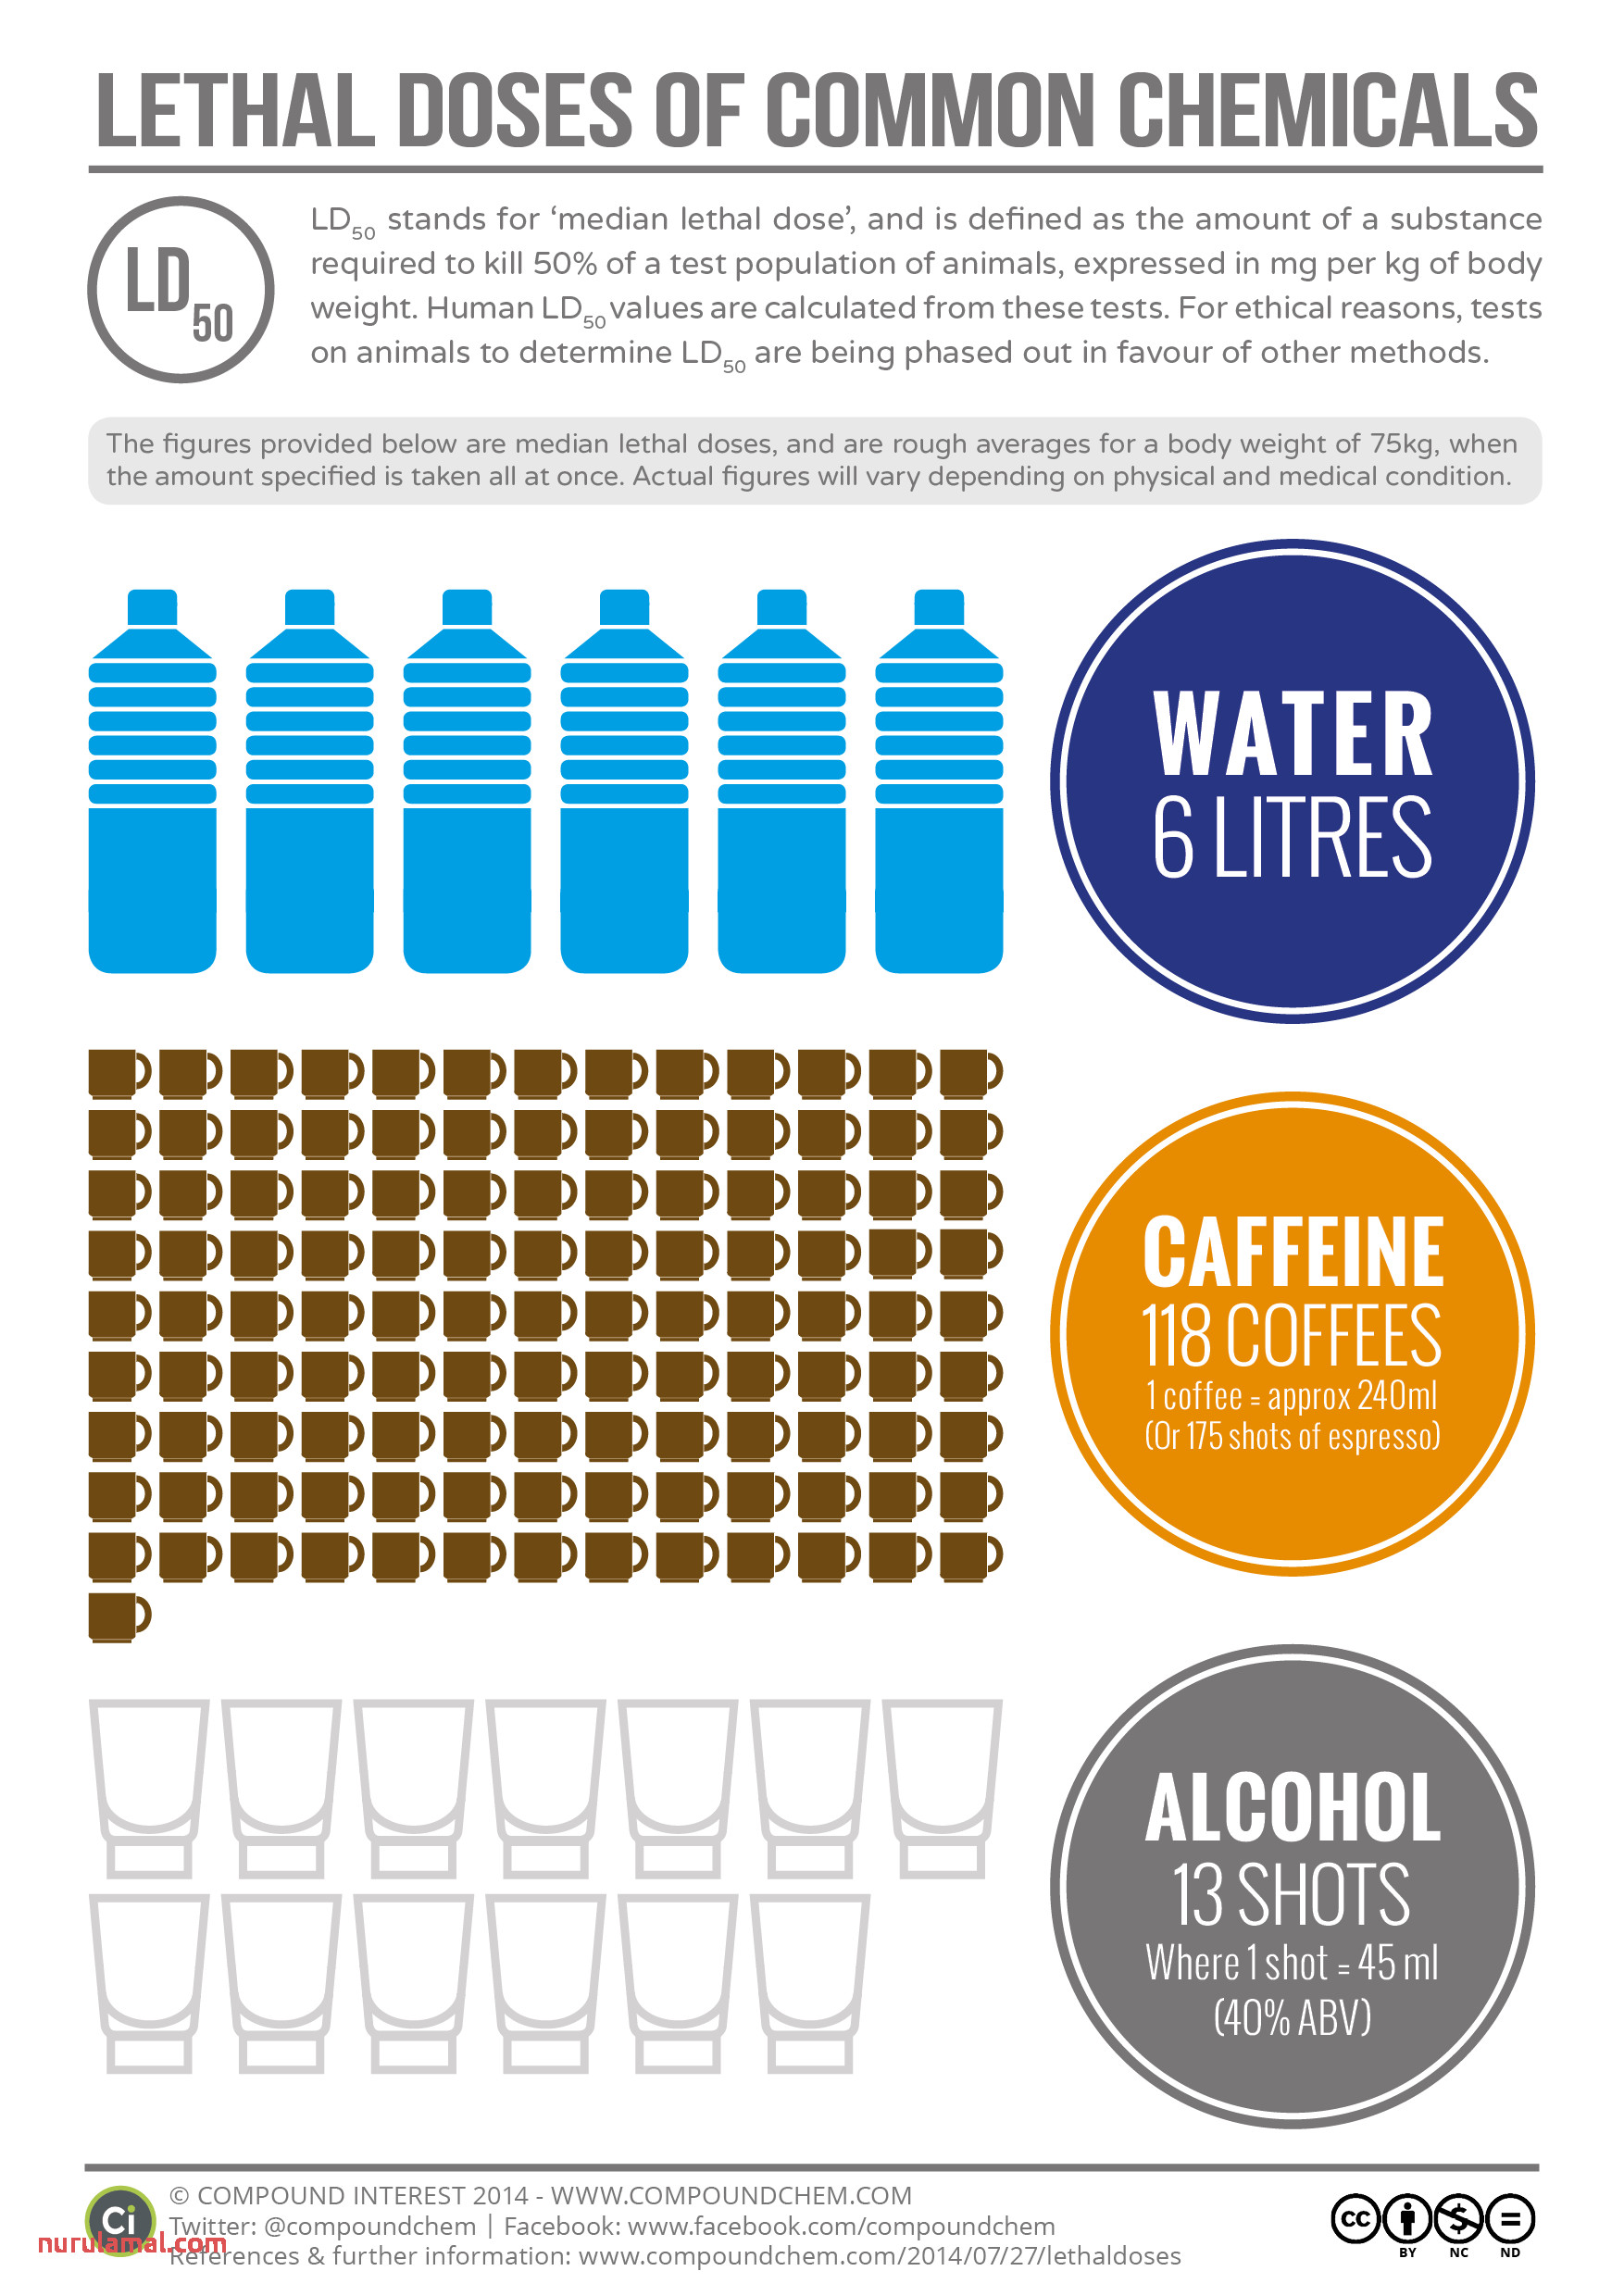 Lethal Doses Of Water Caffeine and Alcohol – Pound Interest